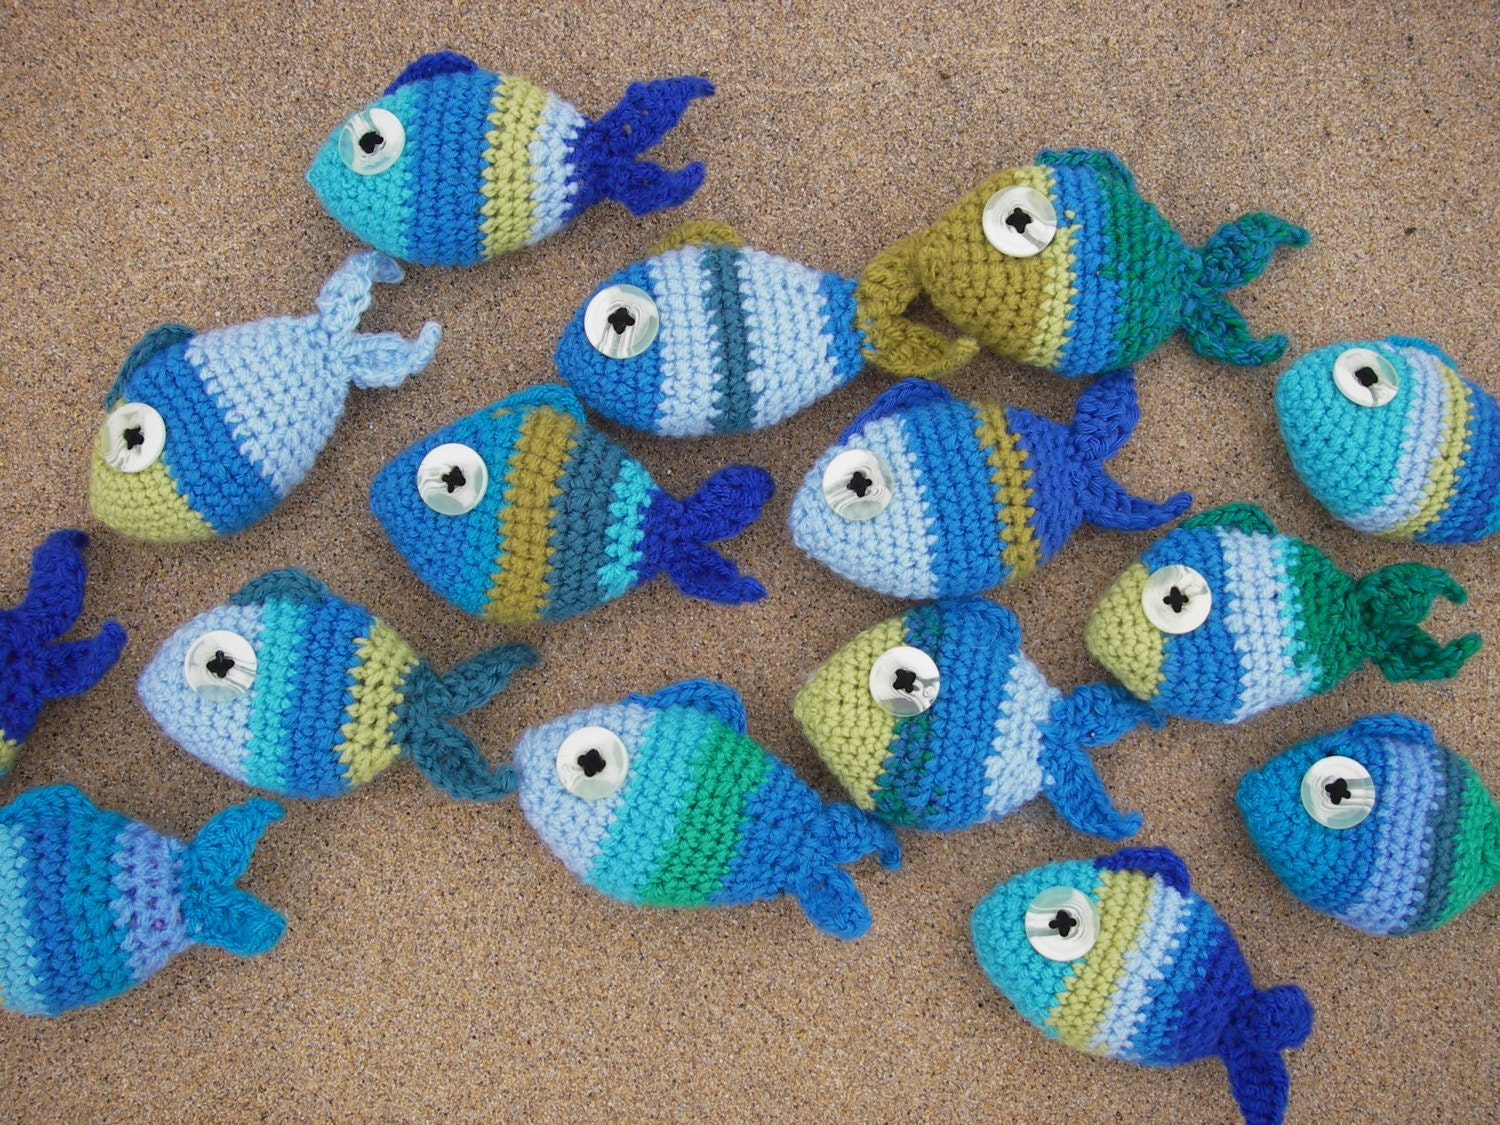 Amazing Knit Fish Pattern Frieze - Blanket Knitting Pattern Ideas ...